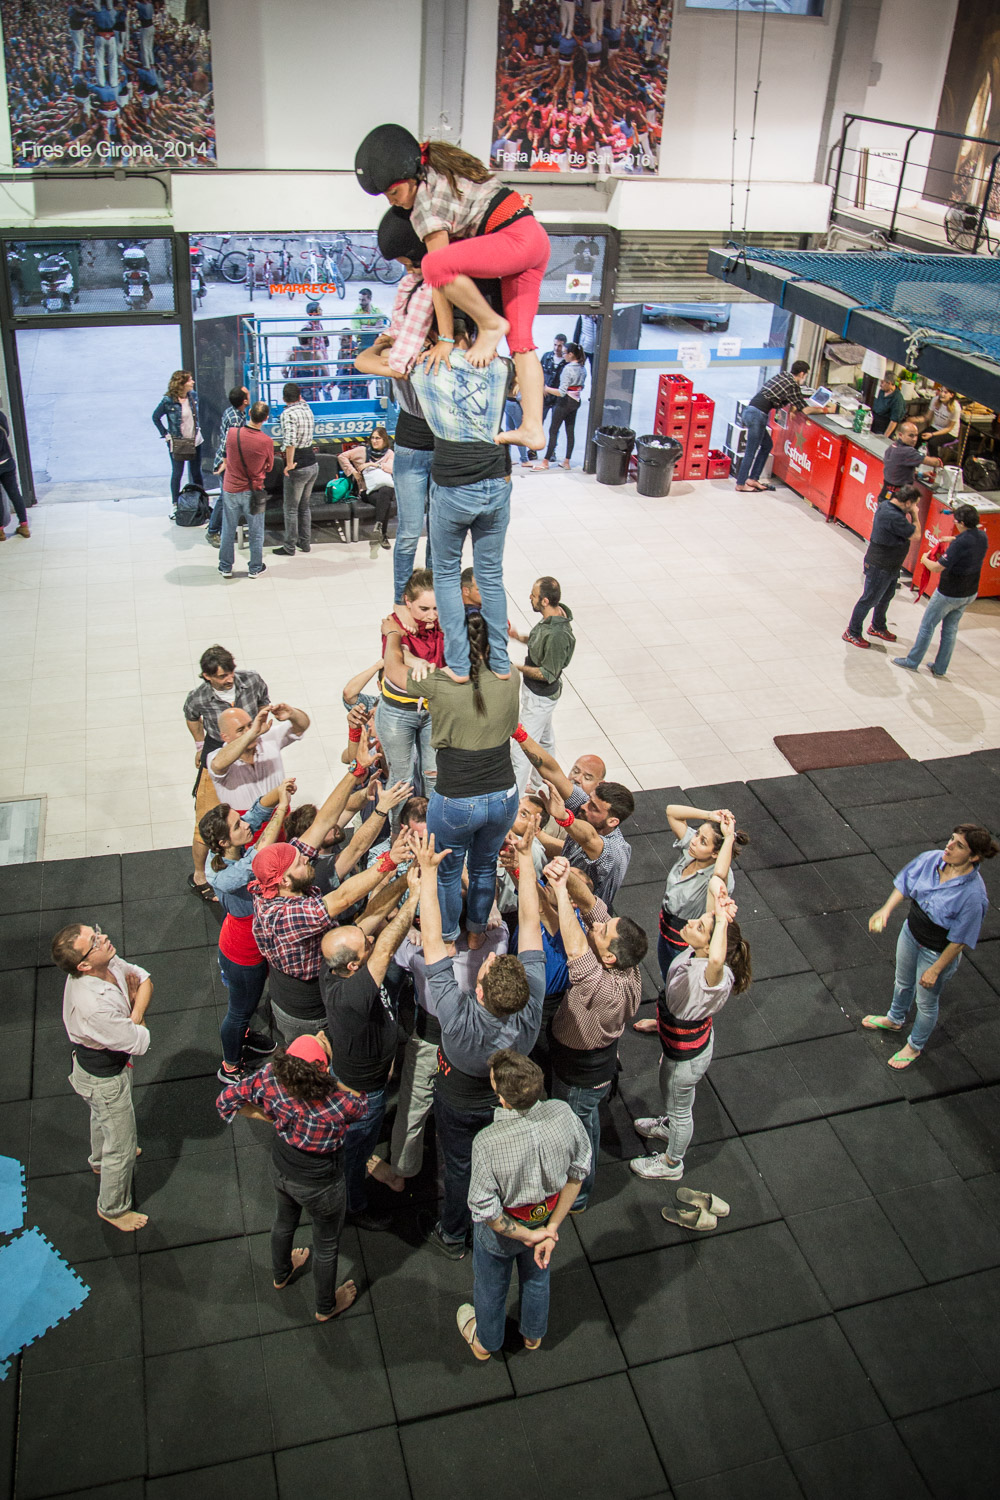 Human Tower Practice